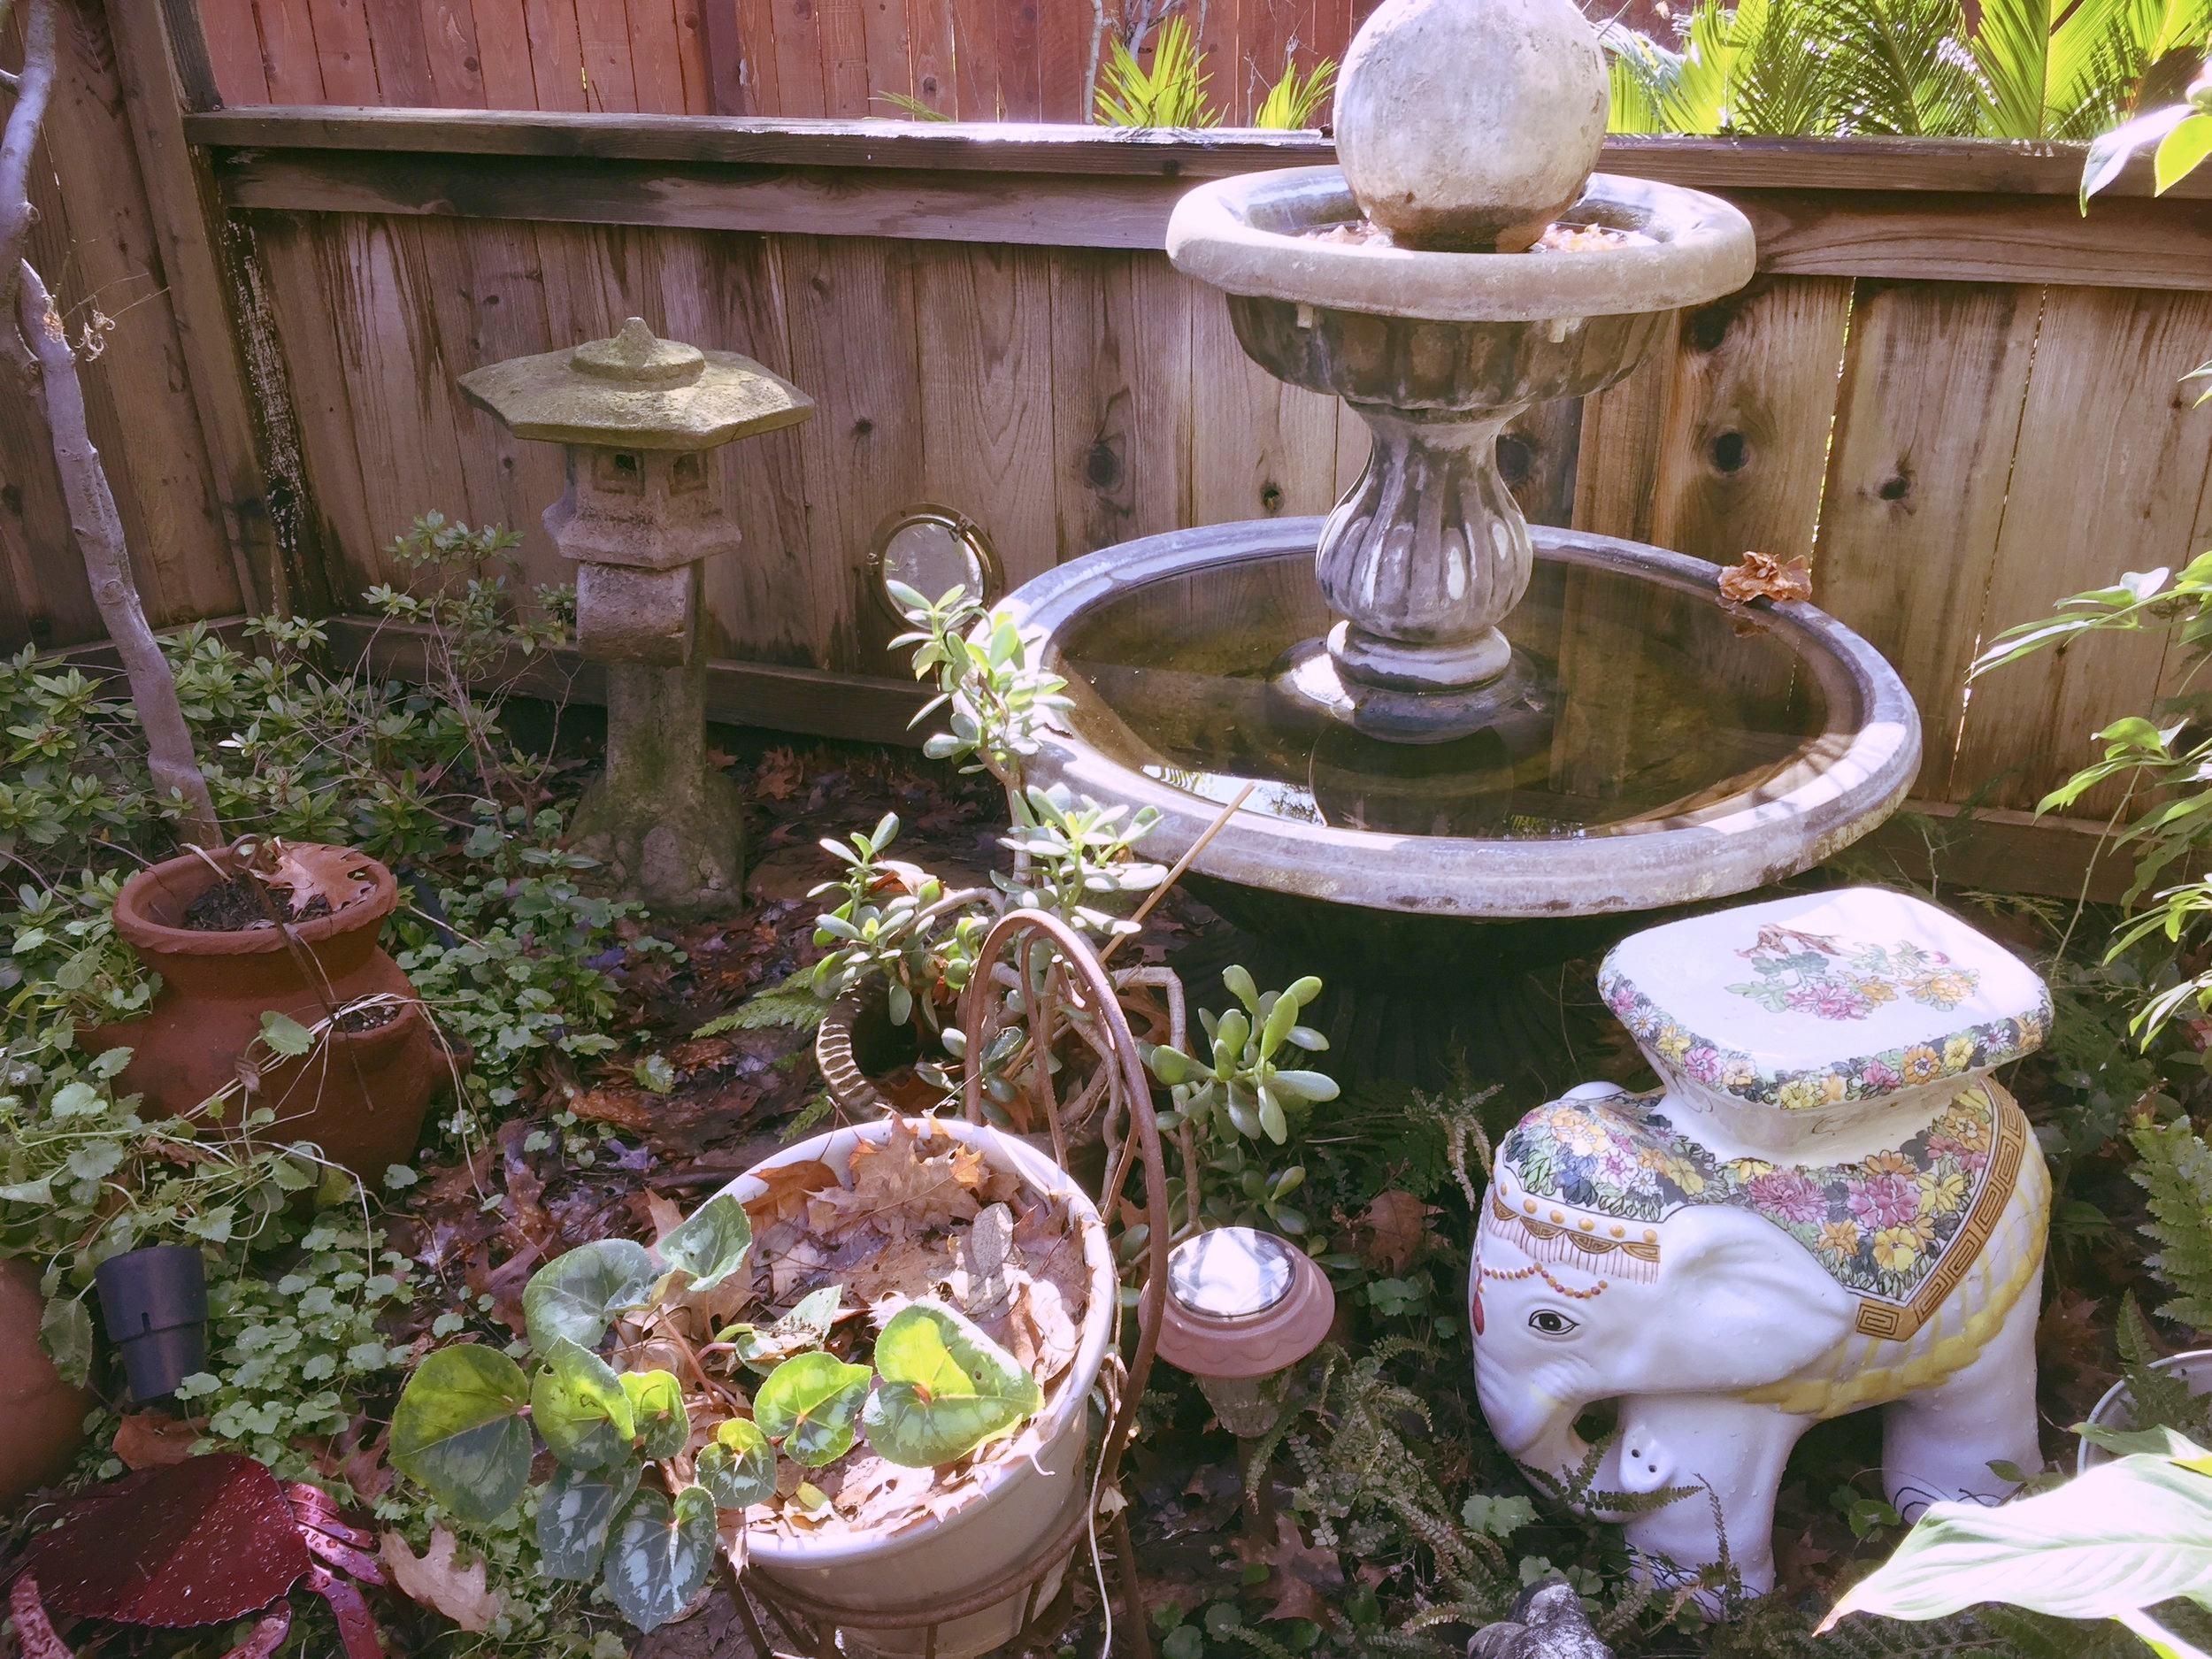 Sweet back garden that was decorated with statuary and fountains.